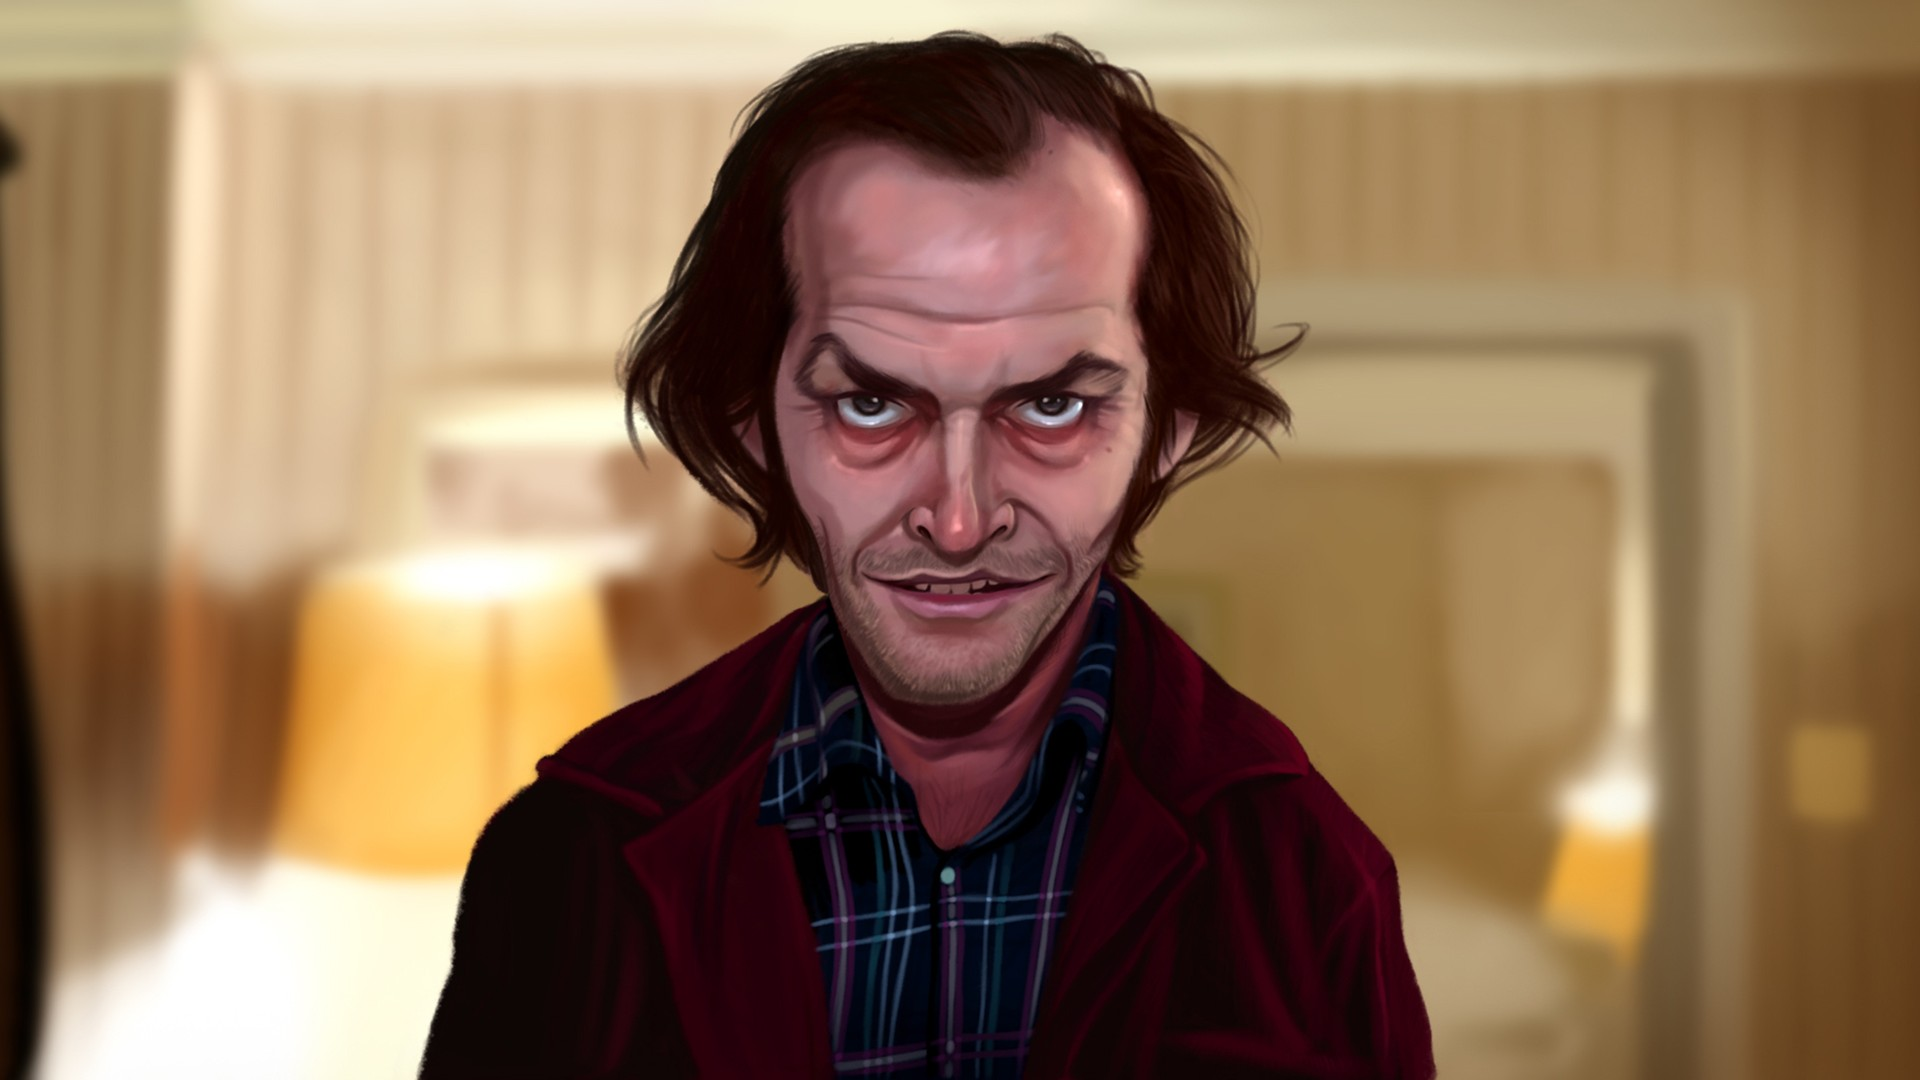 Download-the-shining-stanley-kubrick-jack-torrance-jack-nicholson-art-films-resolutio-wallpaper-wpc5804384